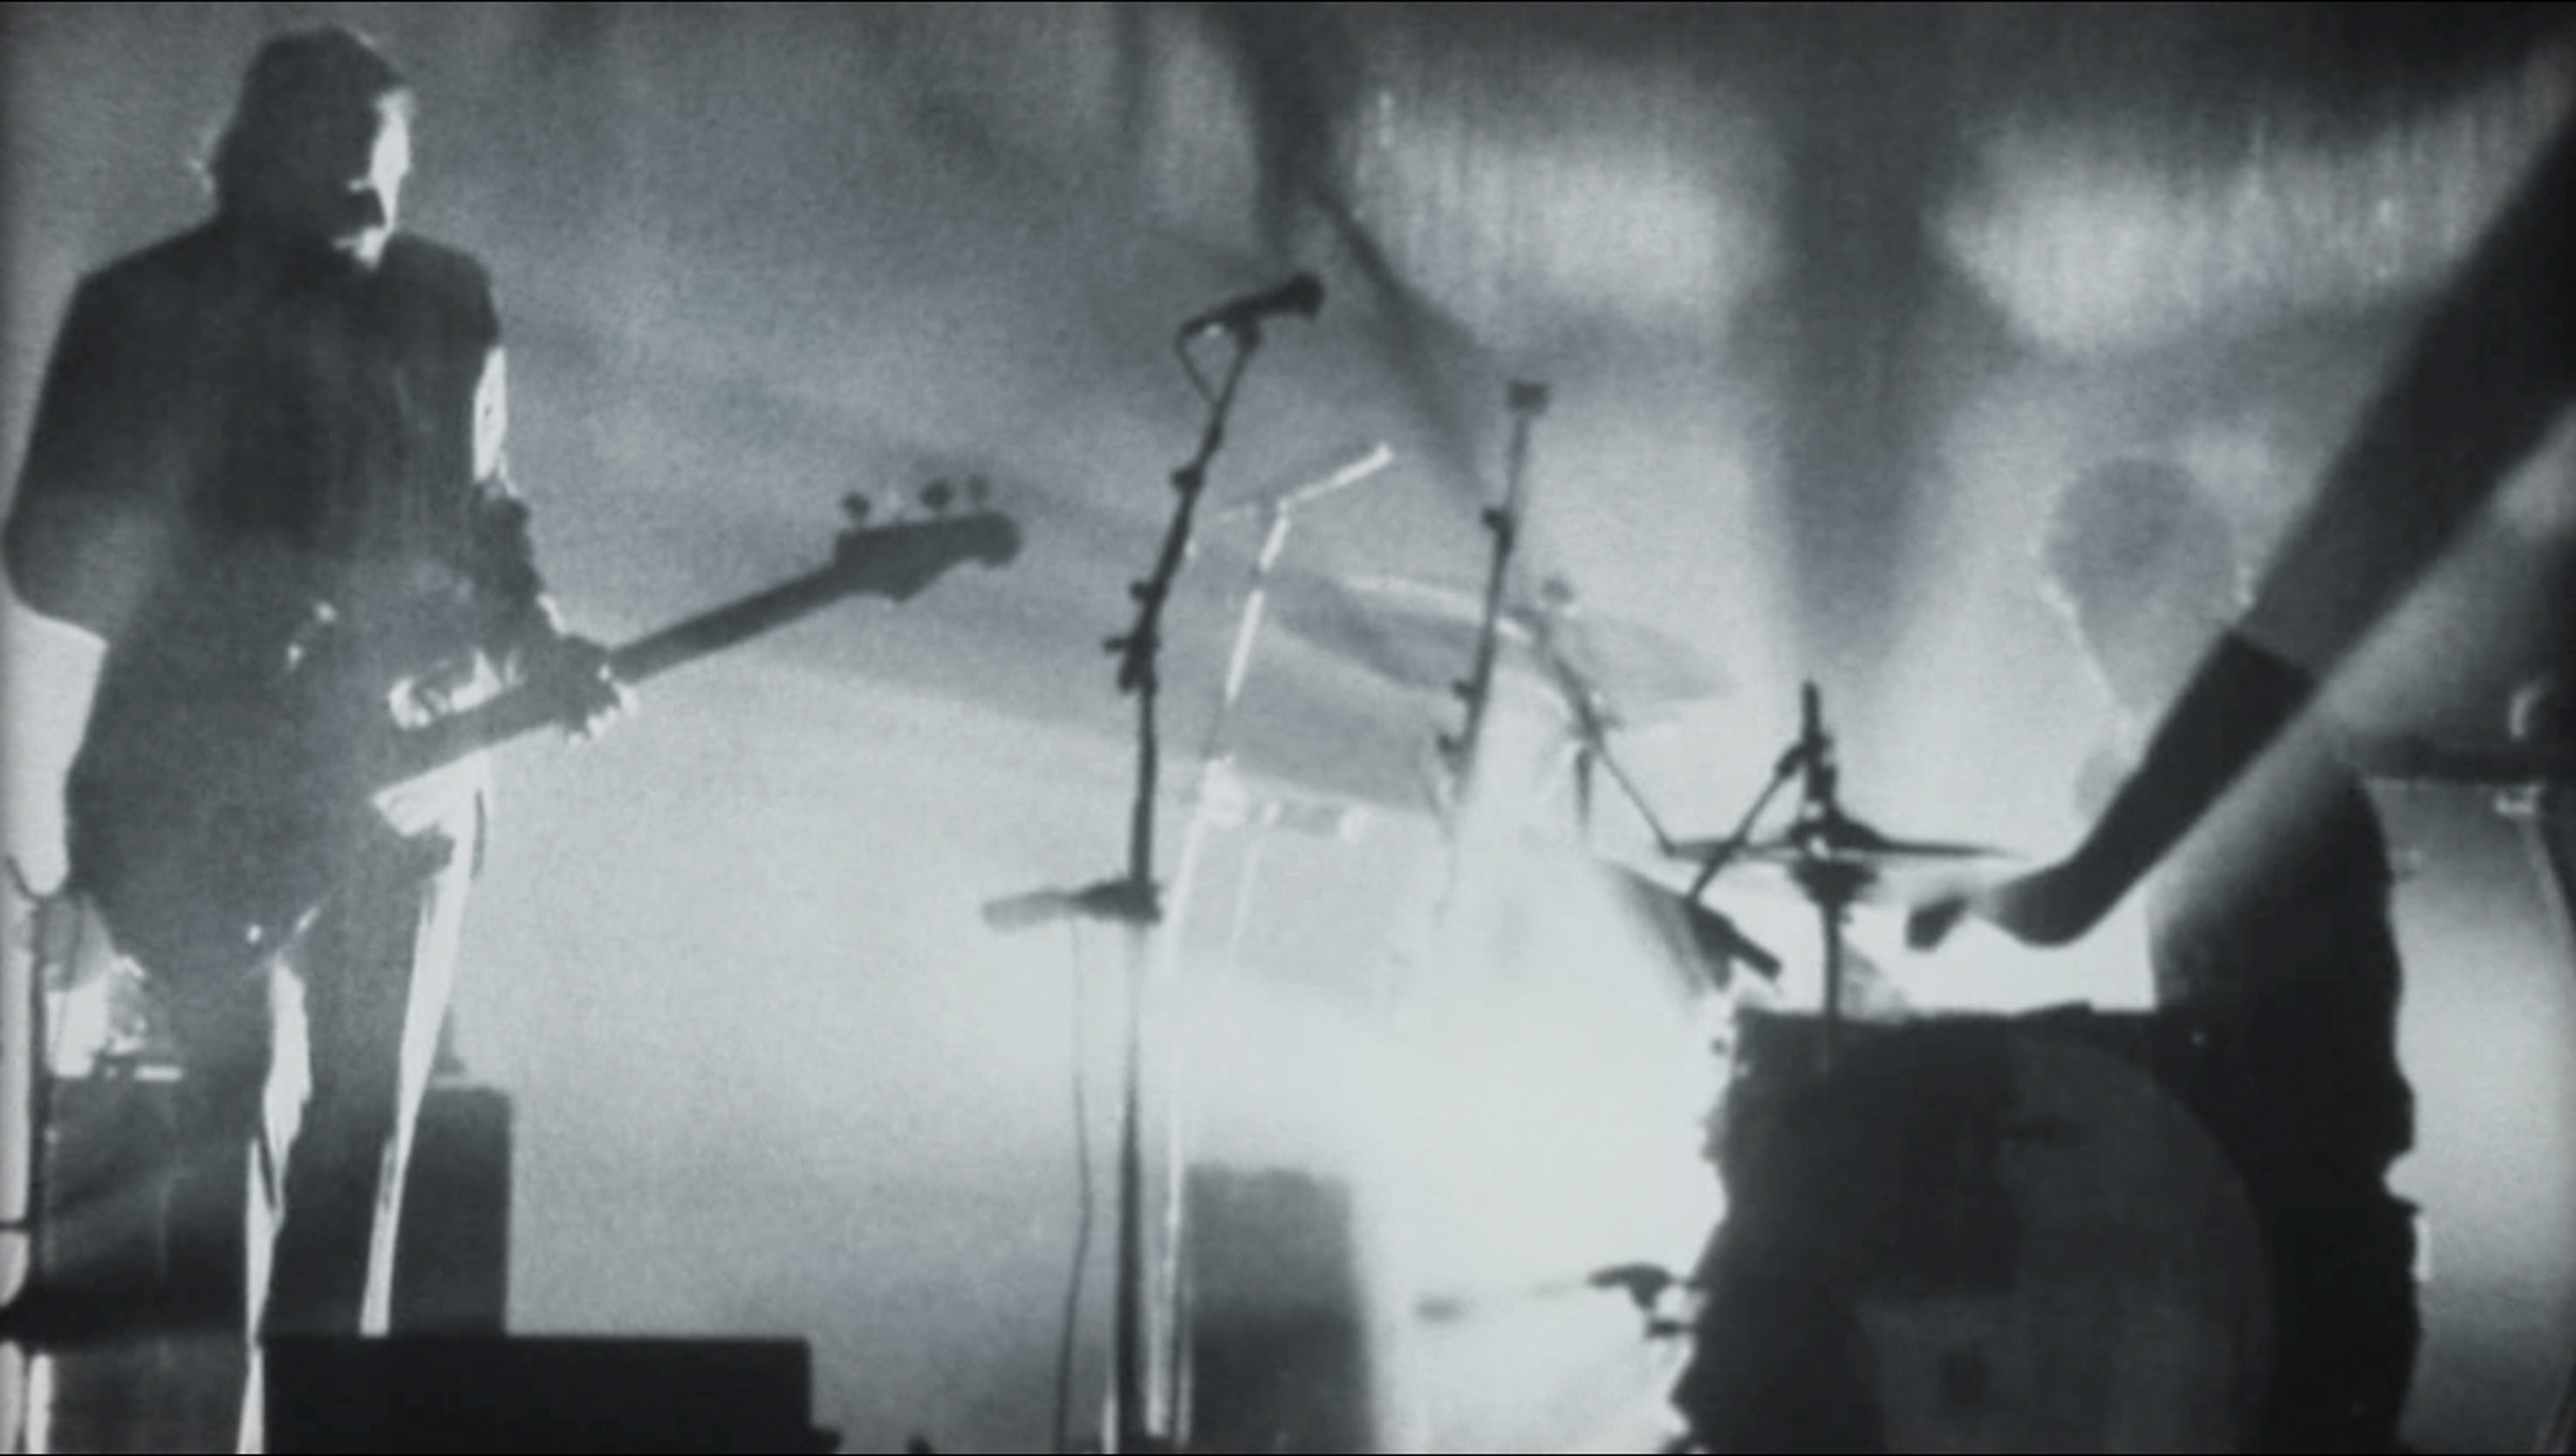 Films of sigur r s and j nsi for Arcade fire miroir noir